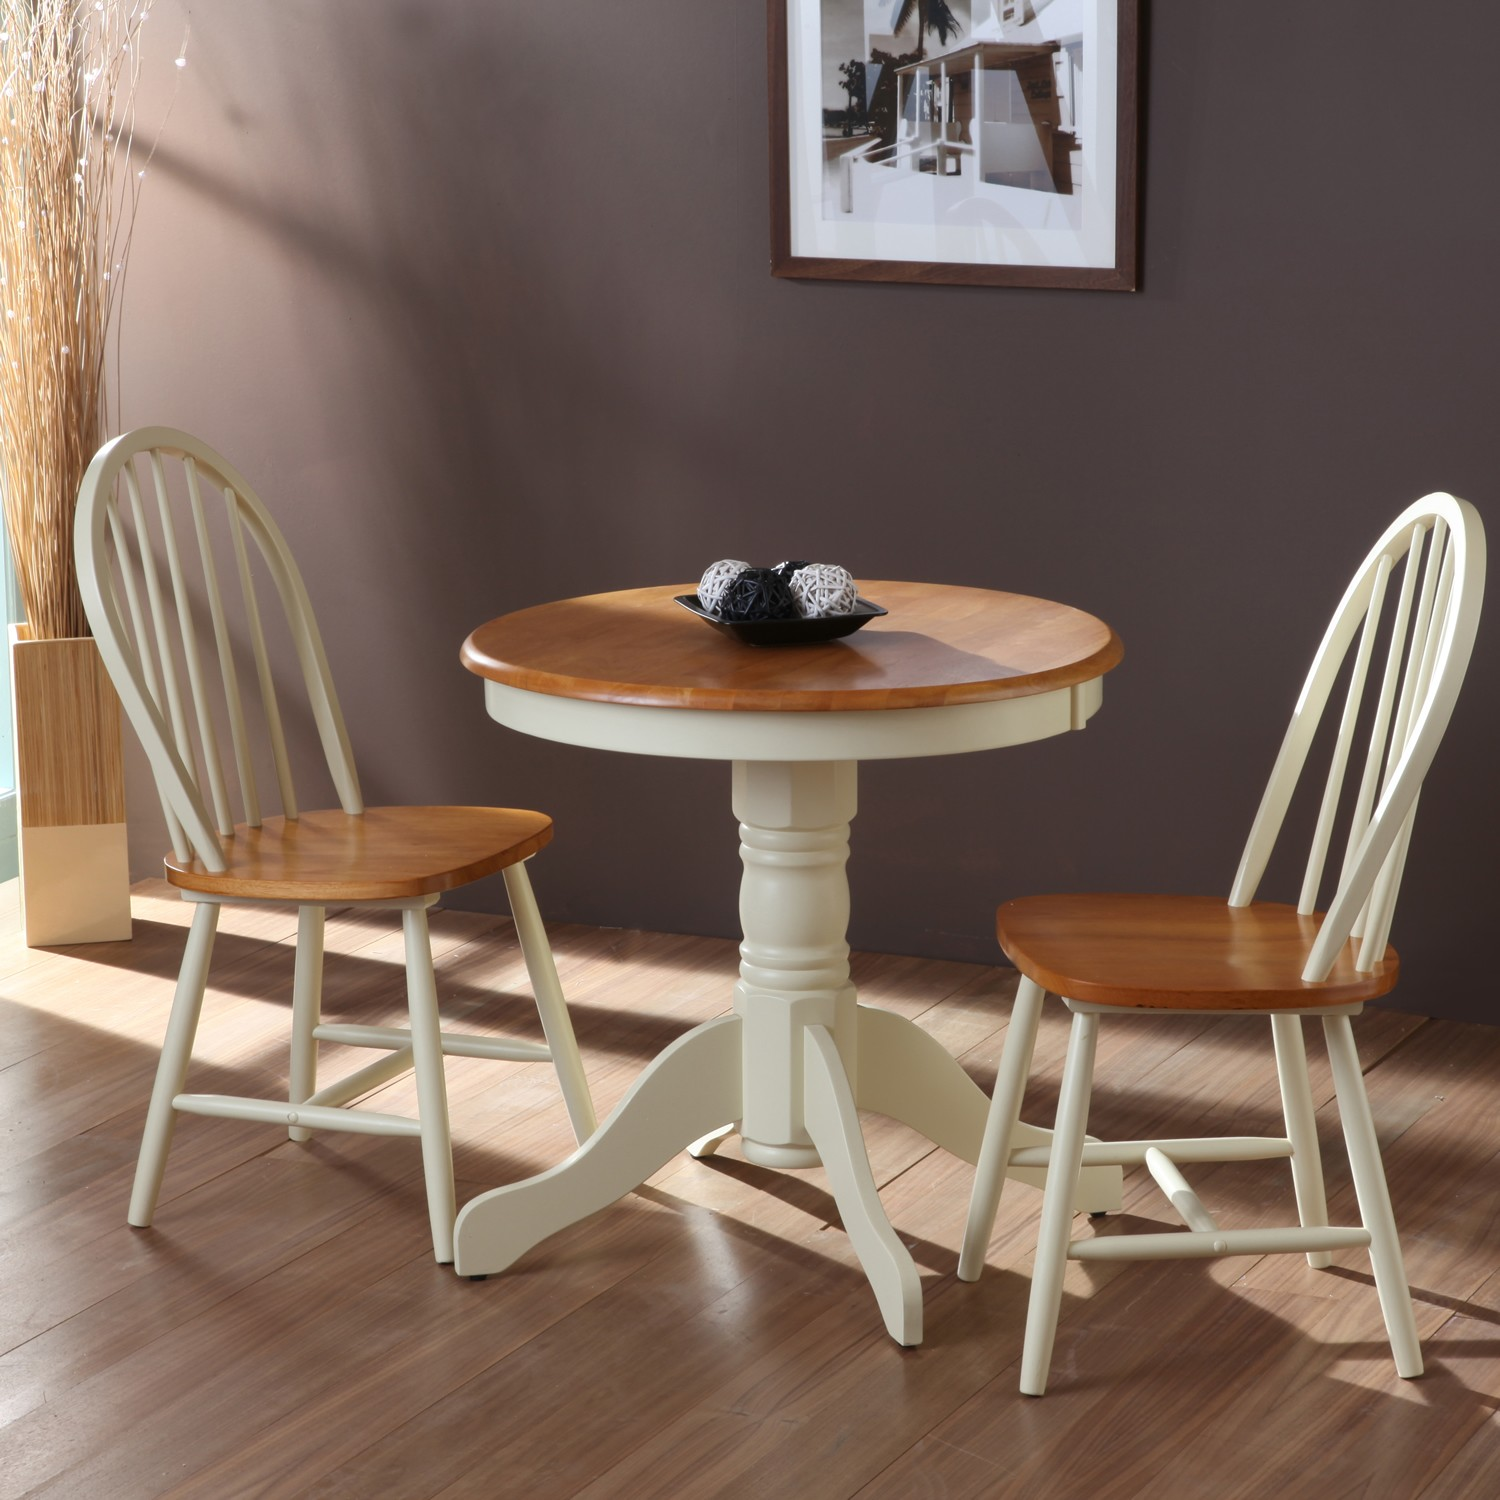 Round Kitchen Table And Chairs Beautiful White Round Kitchen Table And Chairs Homesfeed